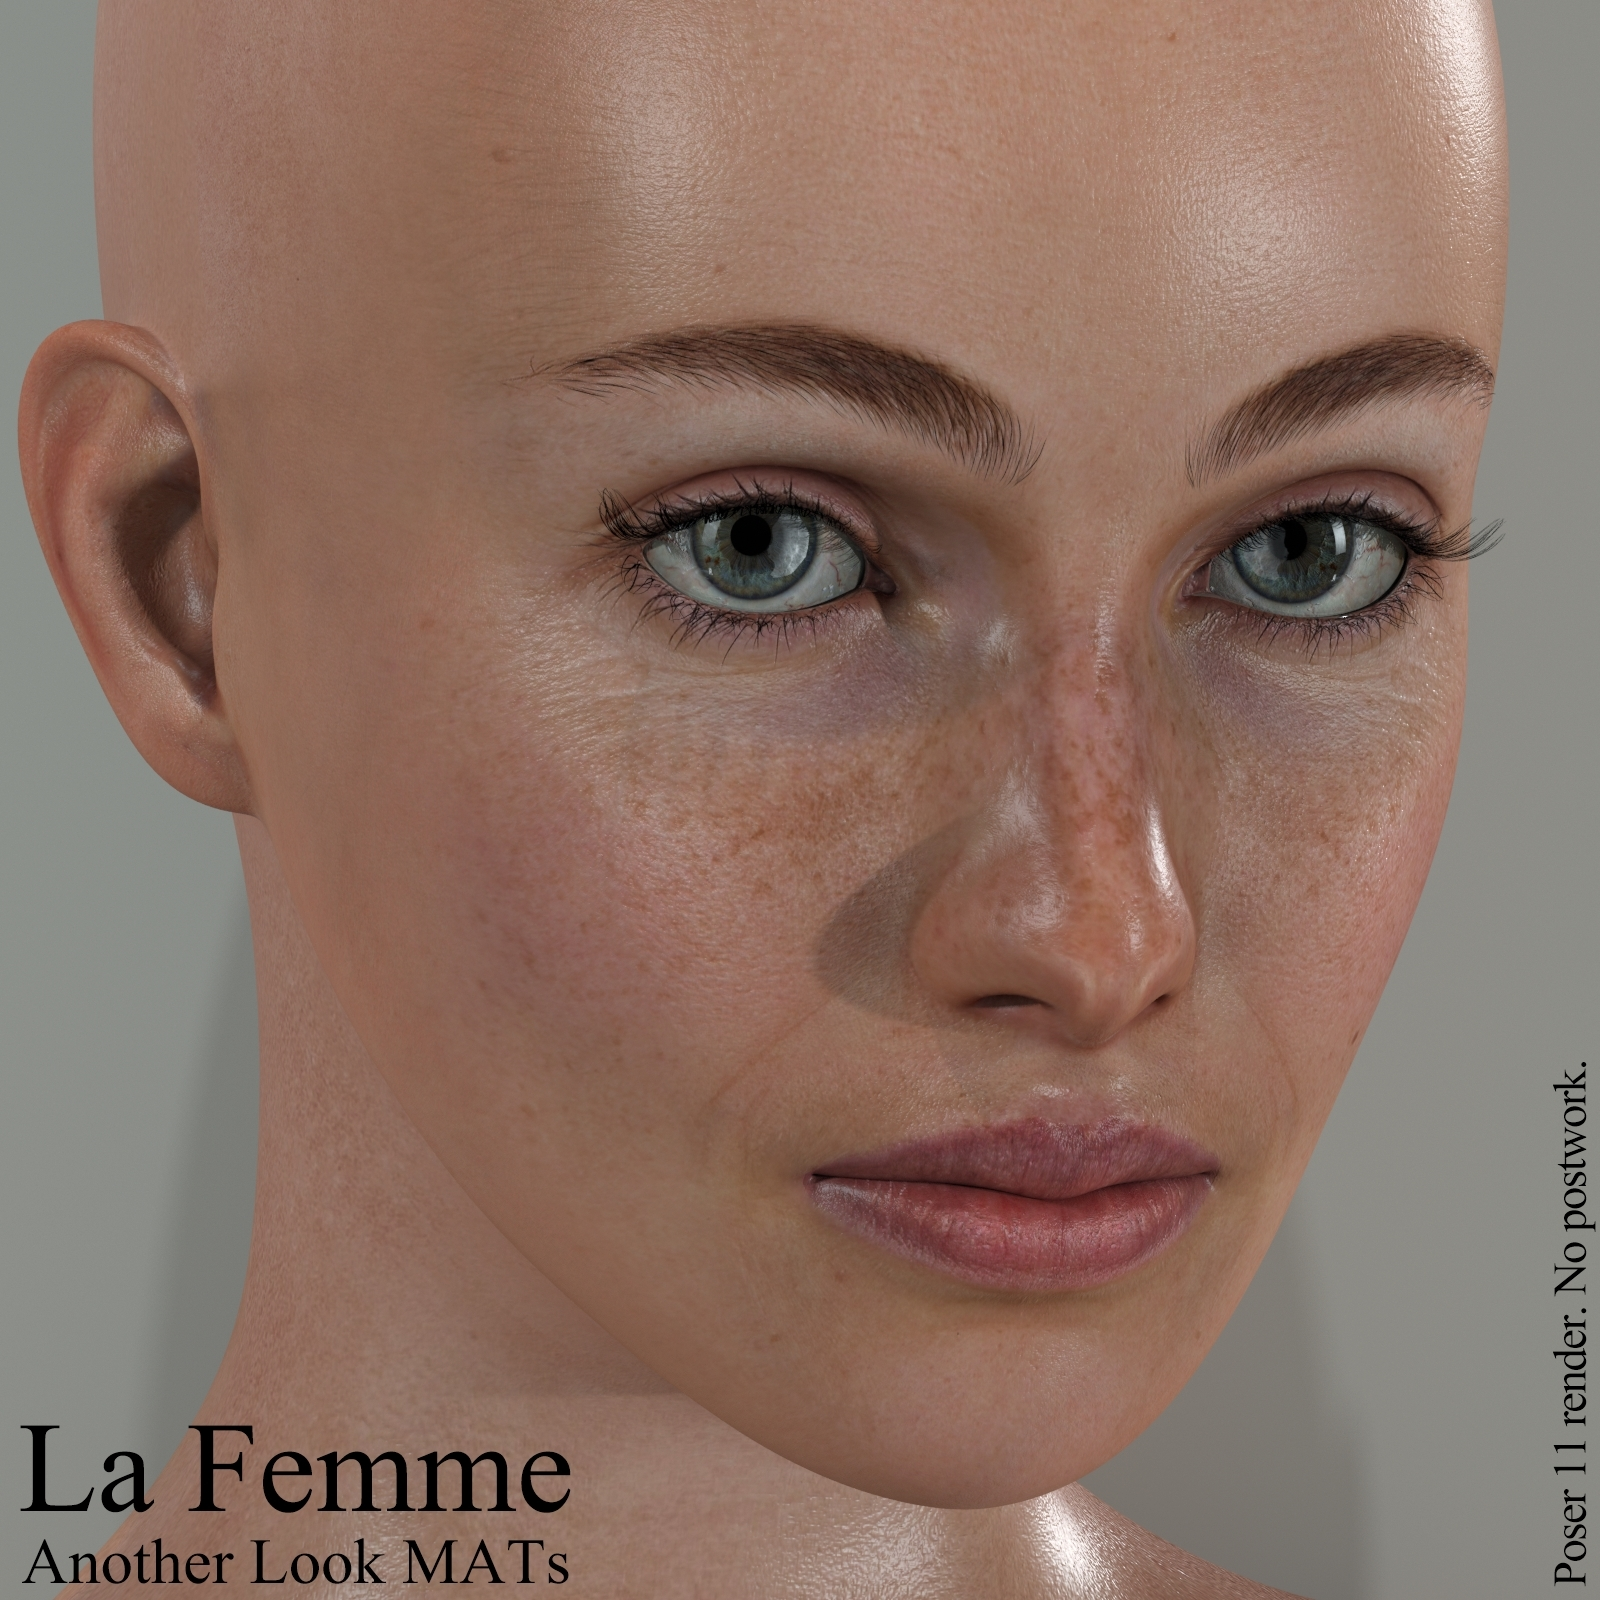 La Femme - Another Look MATs by 3Dream